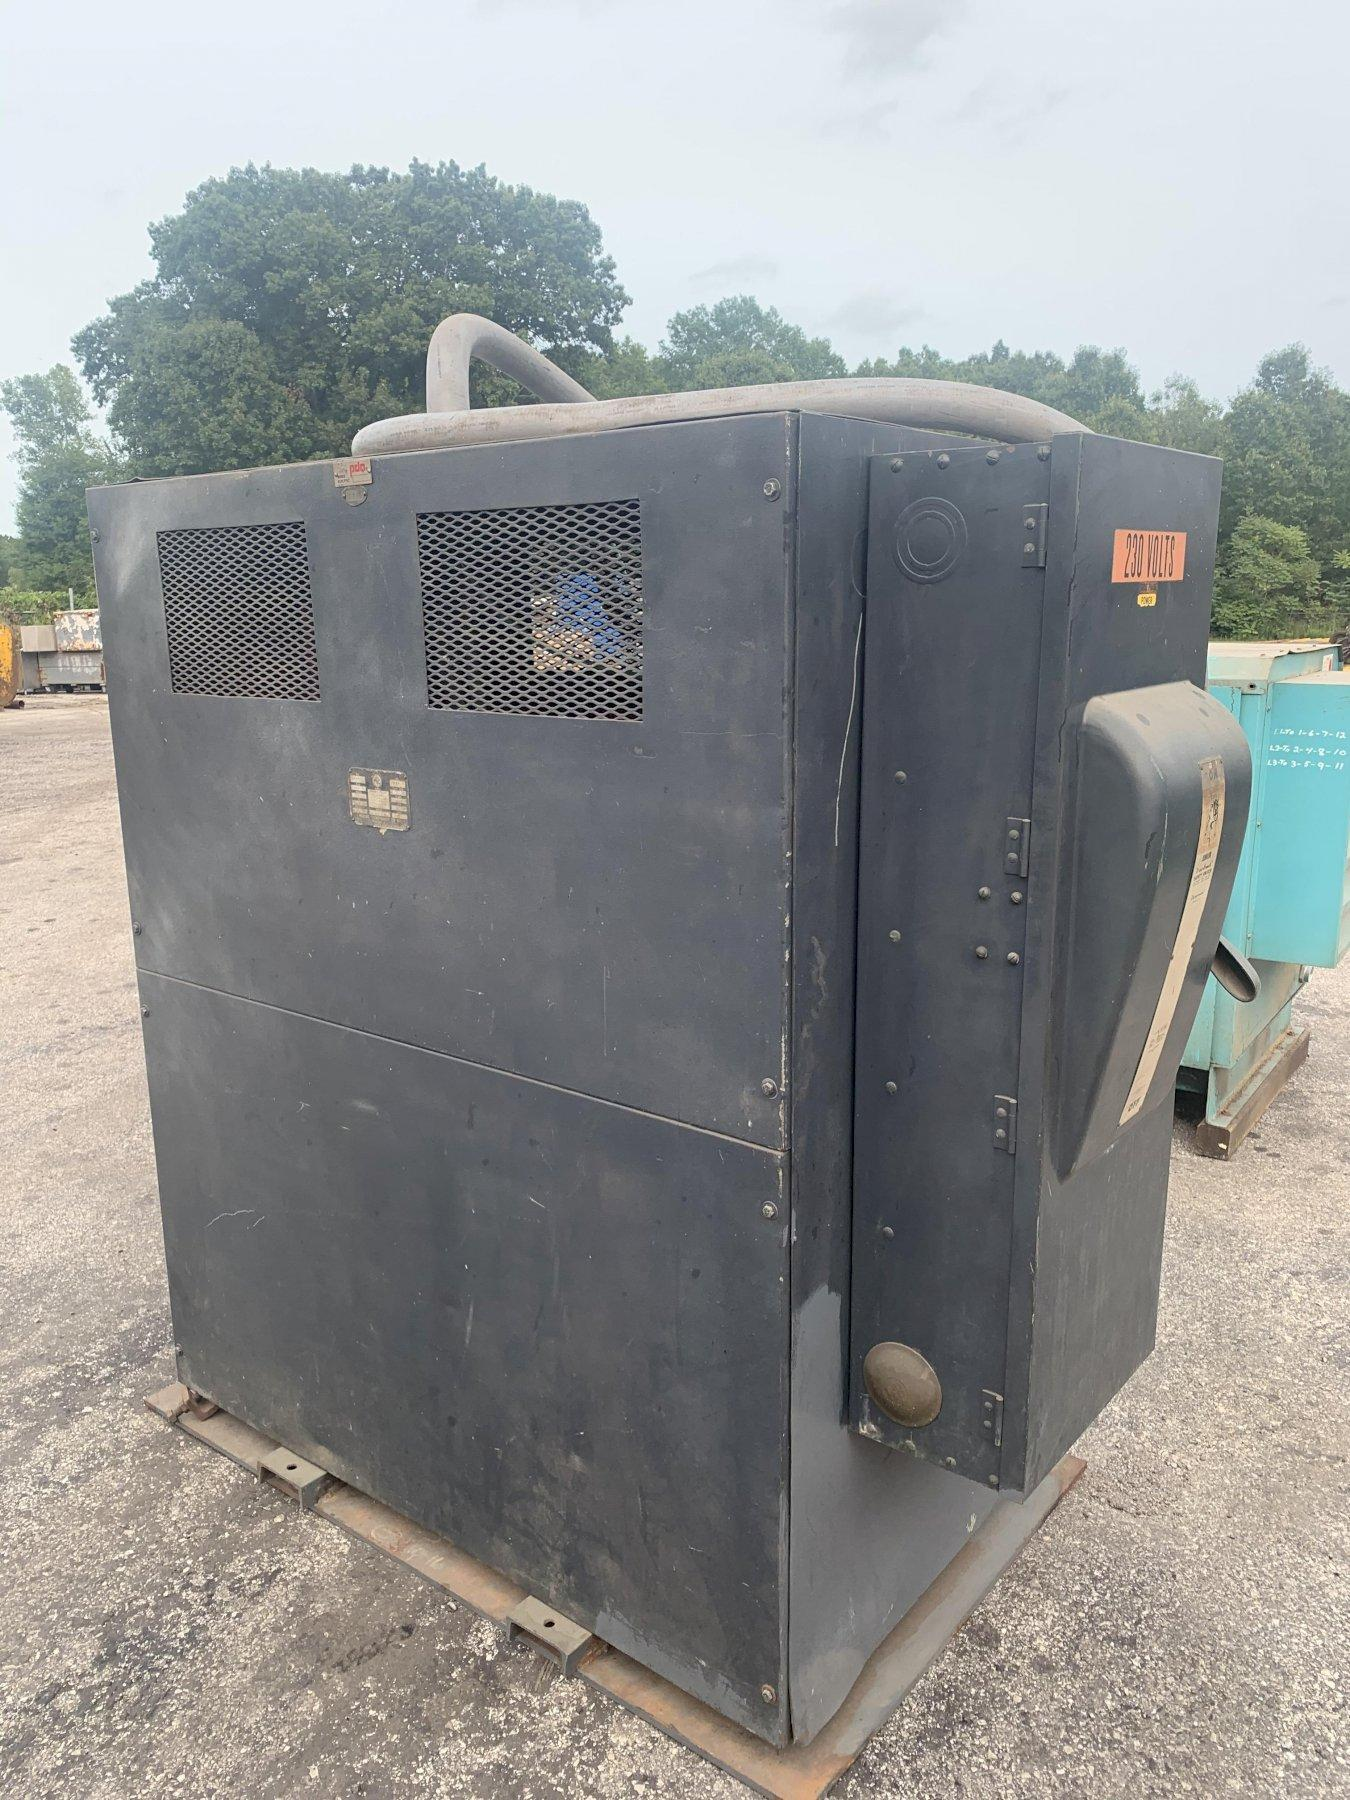 200 KVA MARCUS 440 TO 220 ELECTRICAL 3 PHASE TRANSFORMER: STOCK 13706